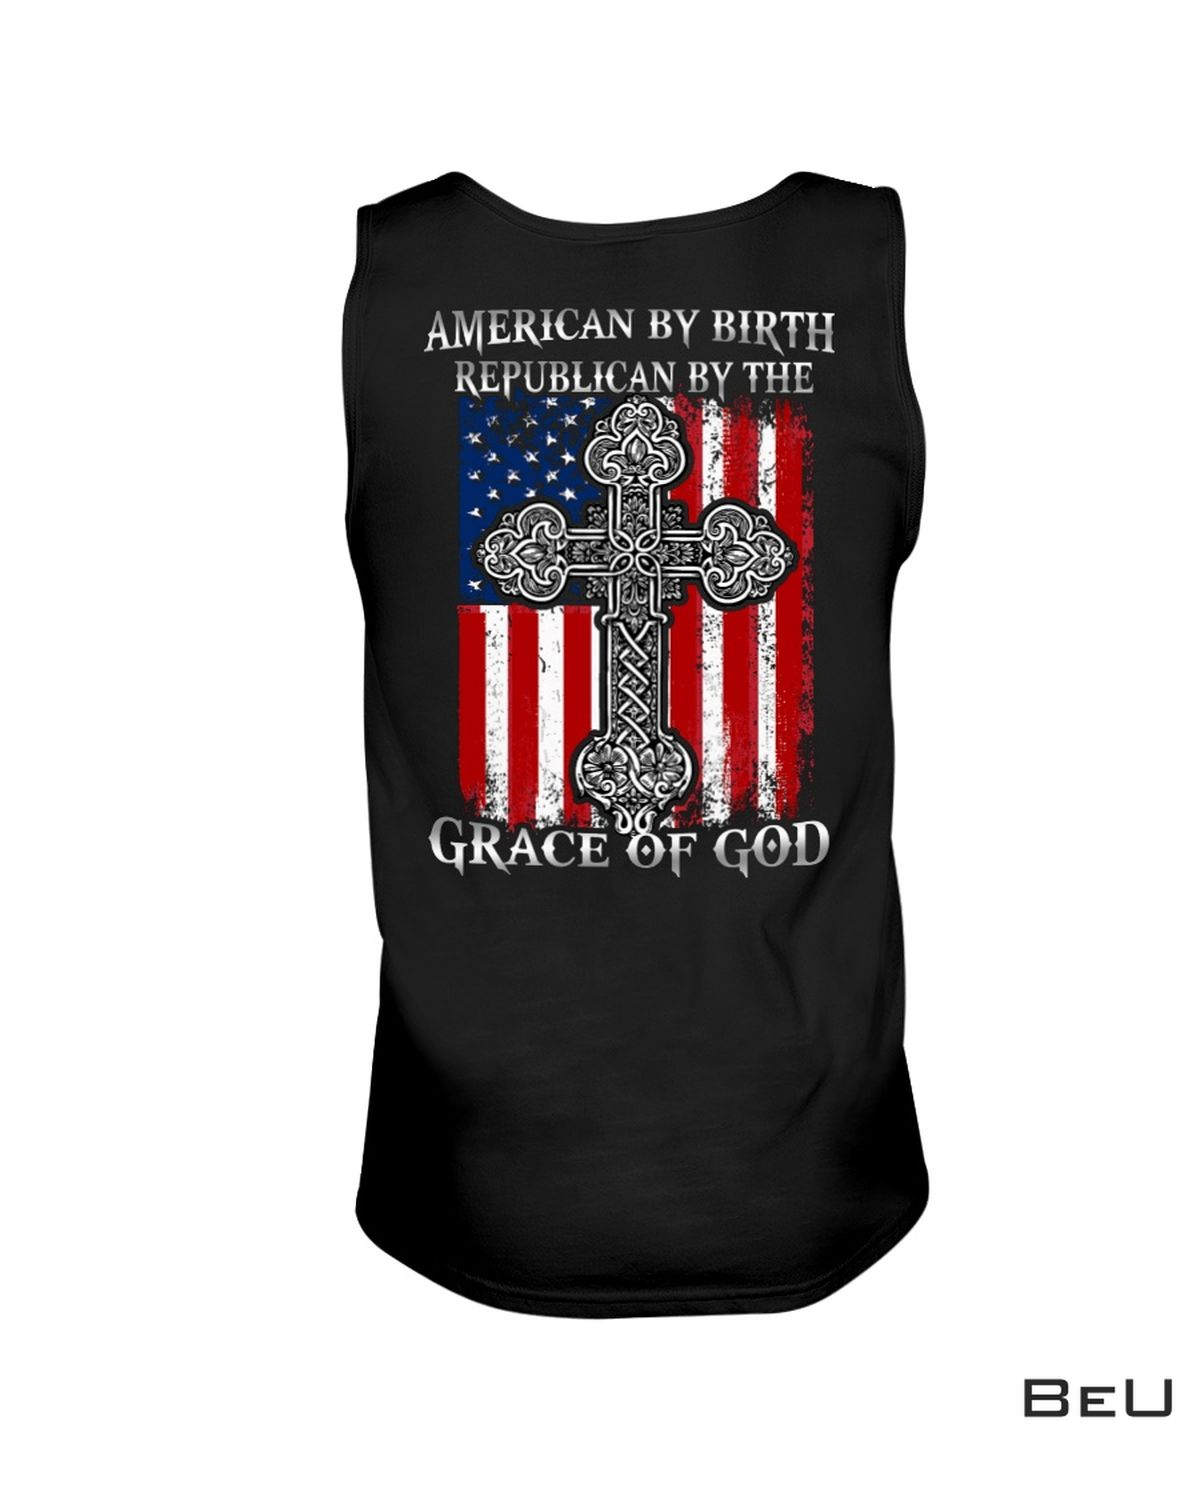 3D American By Birth Republican By The Grace Of God Shirt, hoodie, tank top